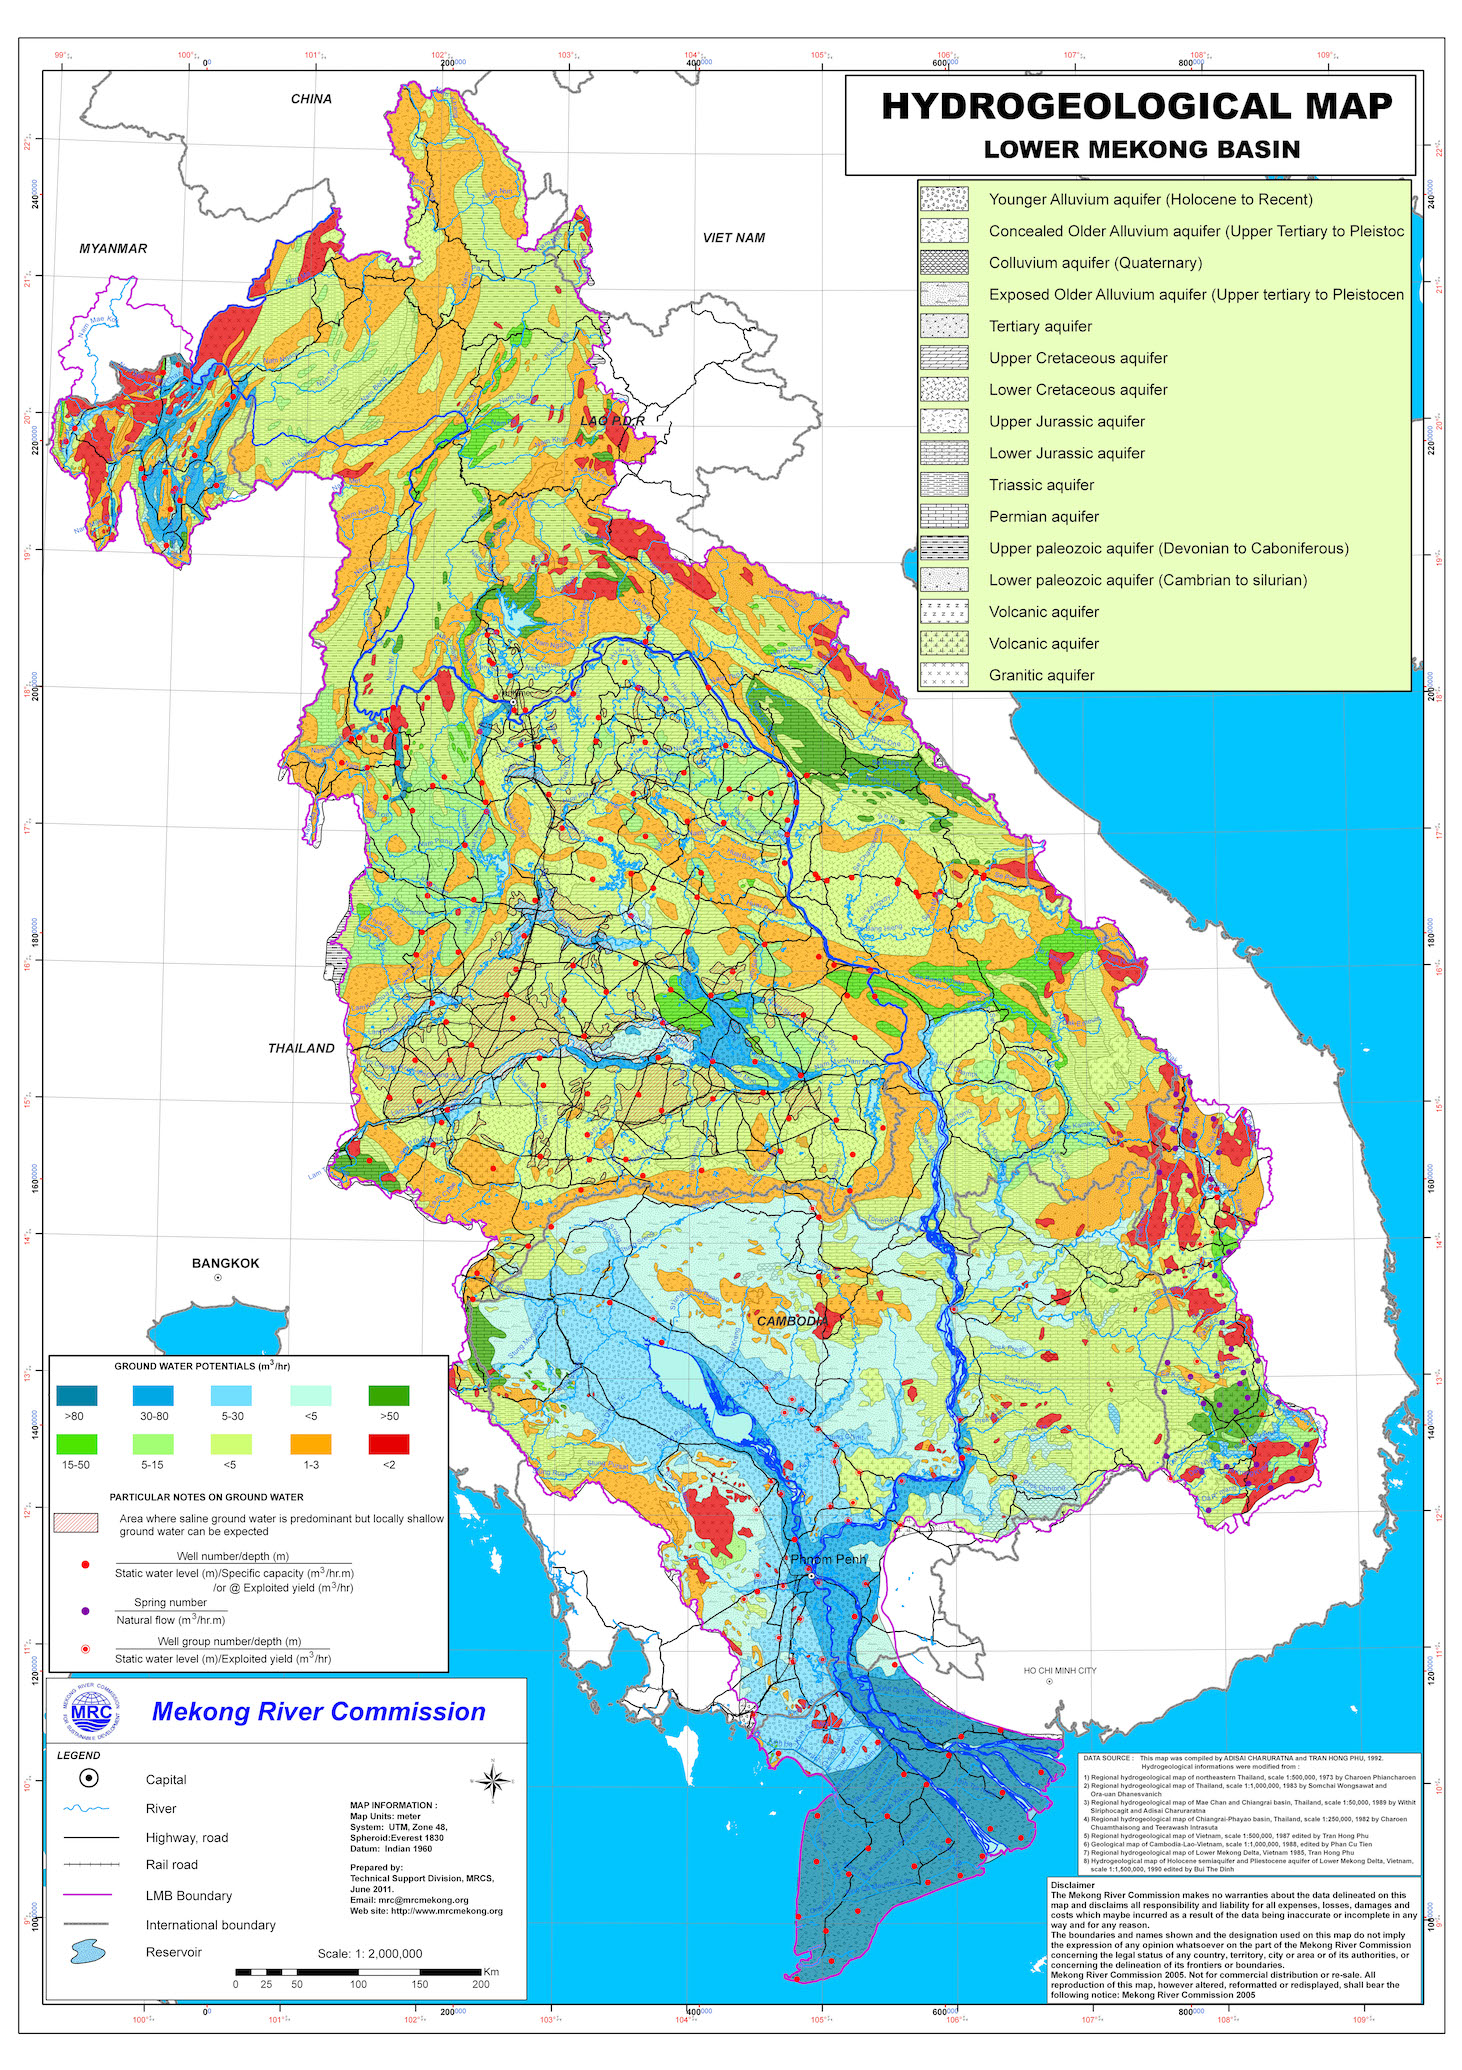 lower mekong basin hydrogeology map source mekong river commission